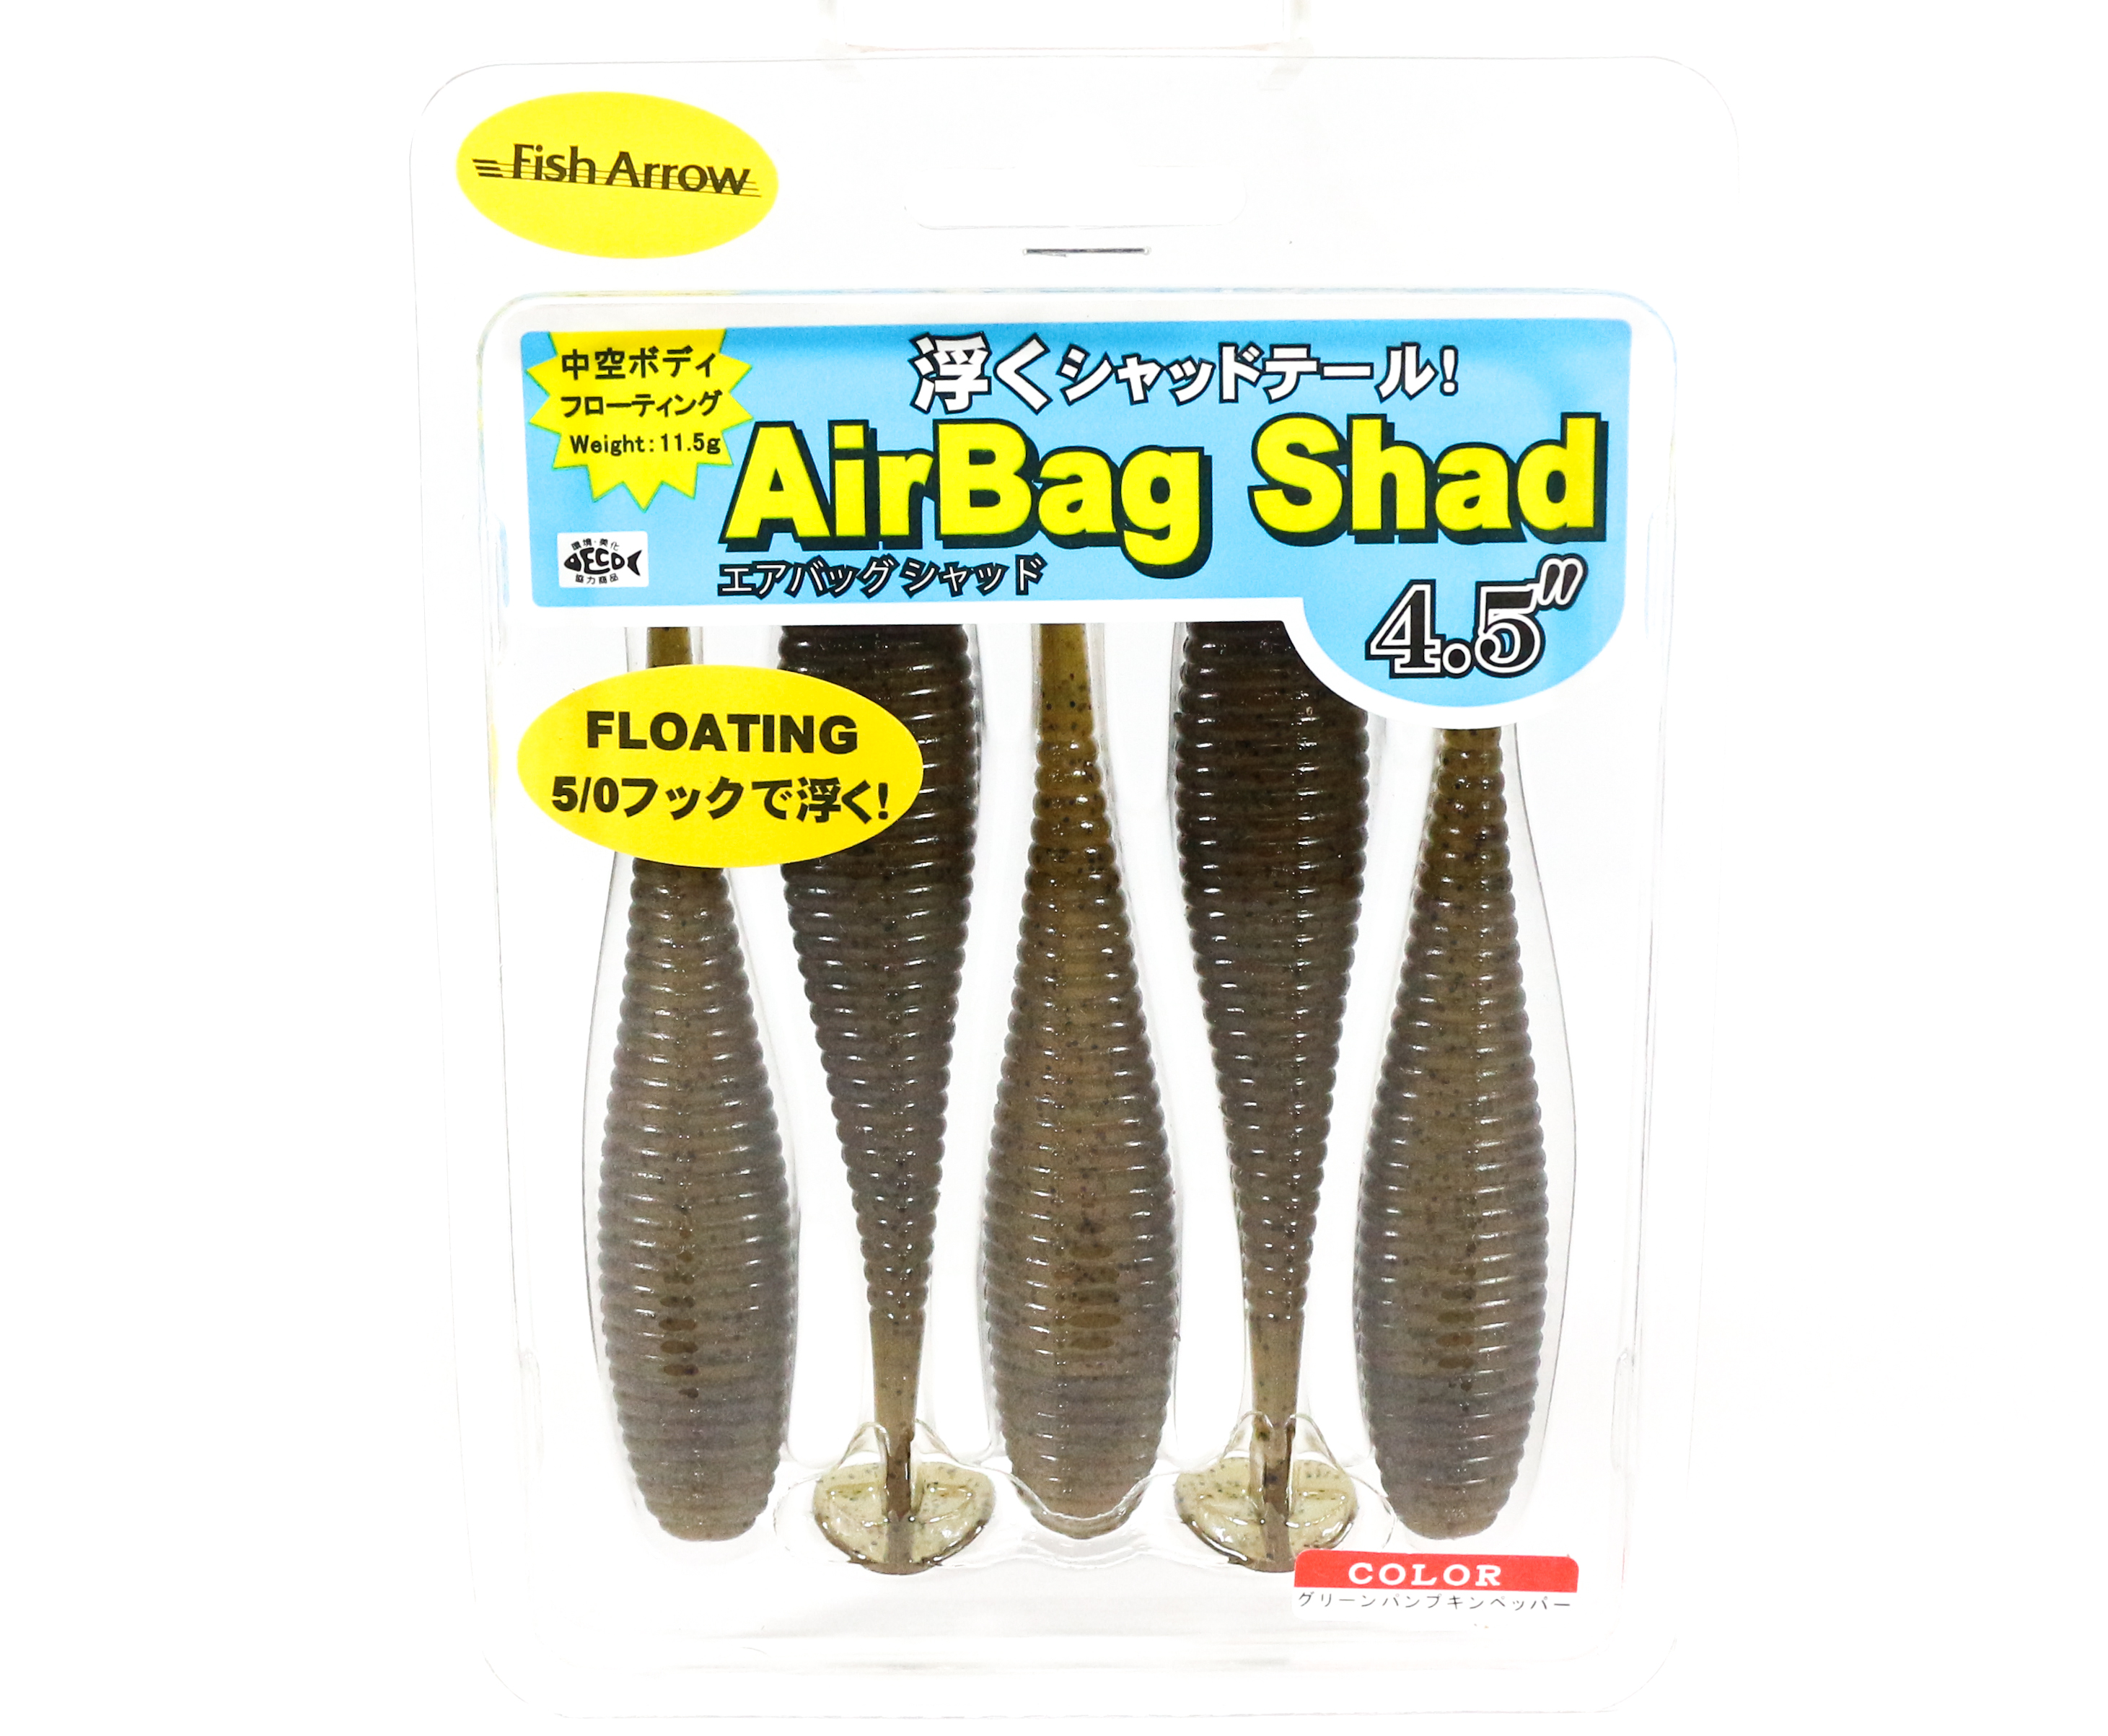 Fish Arrow Soft Lure Air Bag Shad 4.5 Inch 5 Piece per pack #01 (0745)